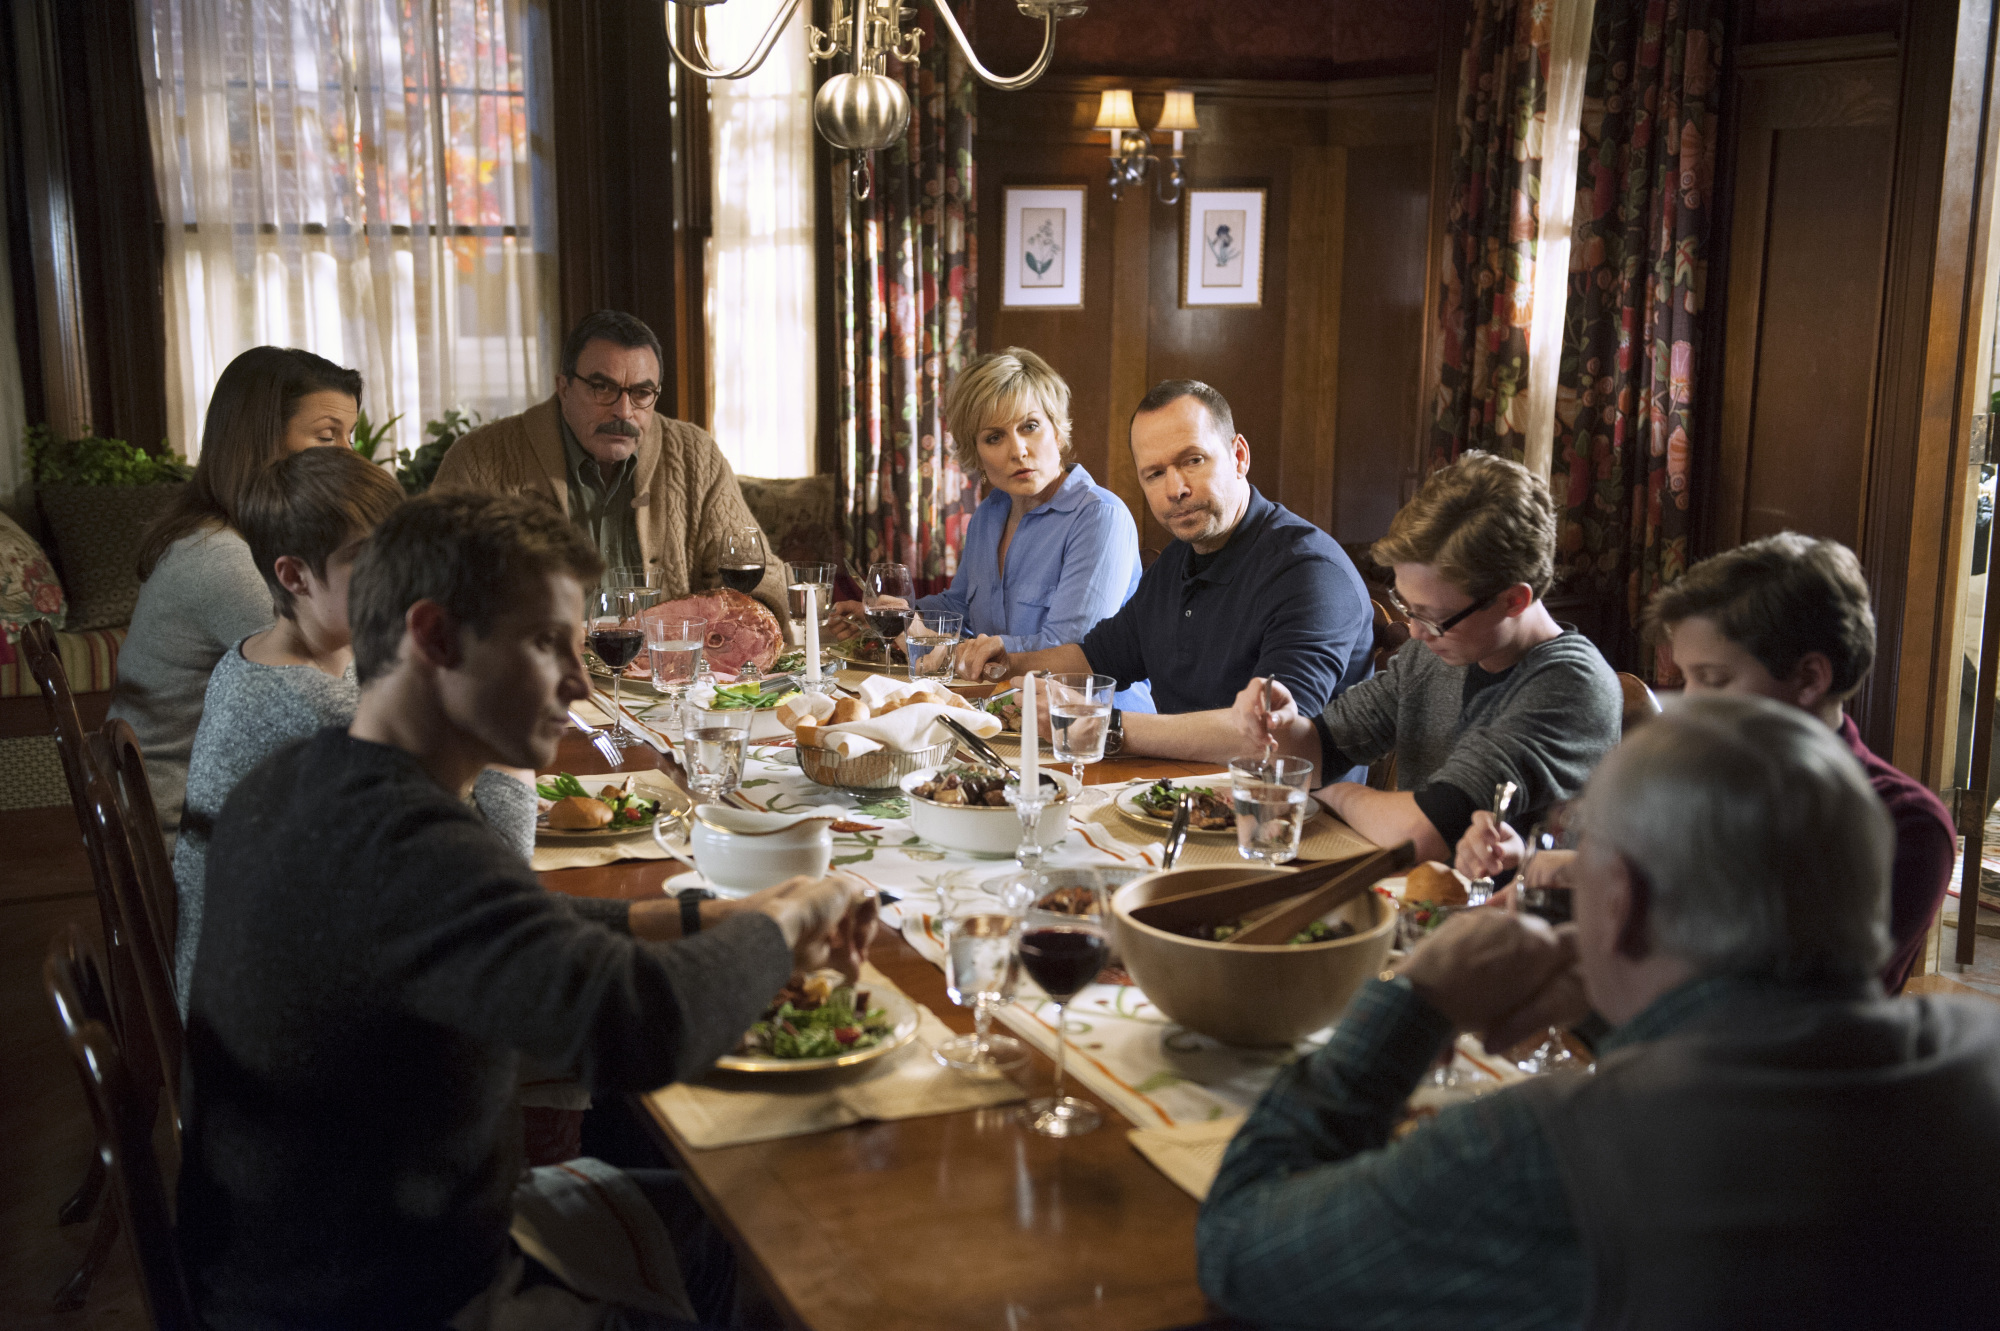 Family dinners are often the place where the exchange of values and ideas occurs between the generations.